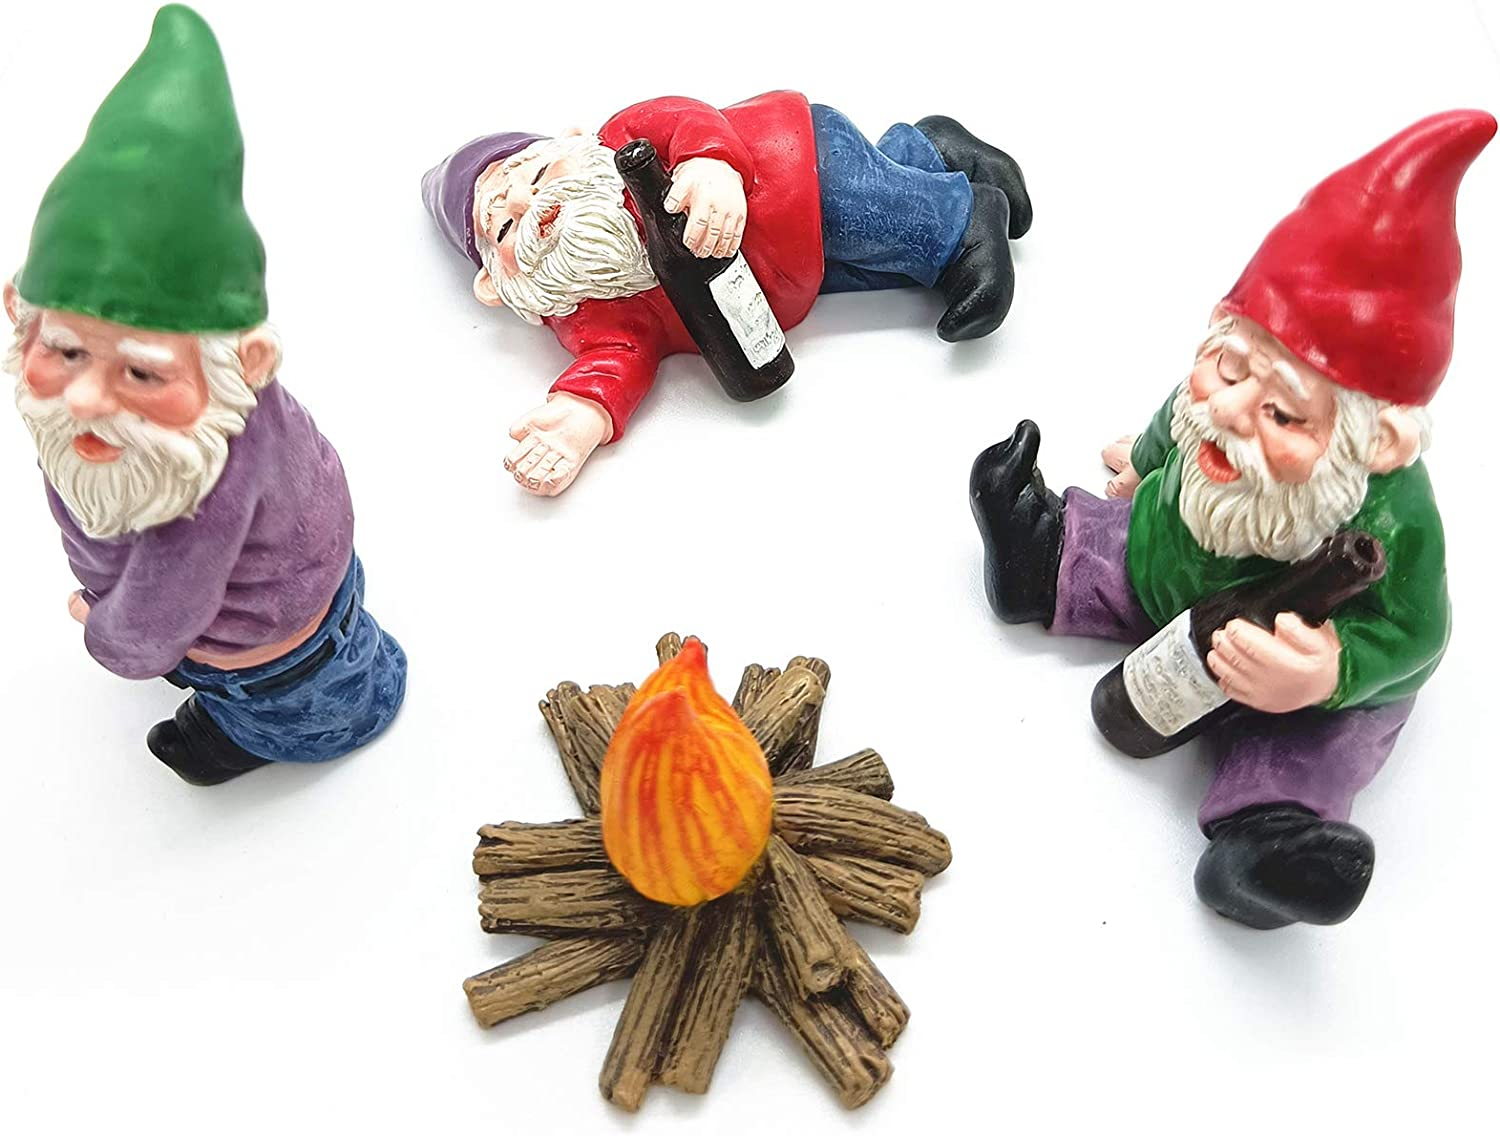 Fairy Garden Accessories,Say Hello to My Little Friend Gnome-4pack Drunk Gnome Kit for Fairy Garden or Home Decoration